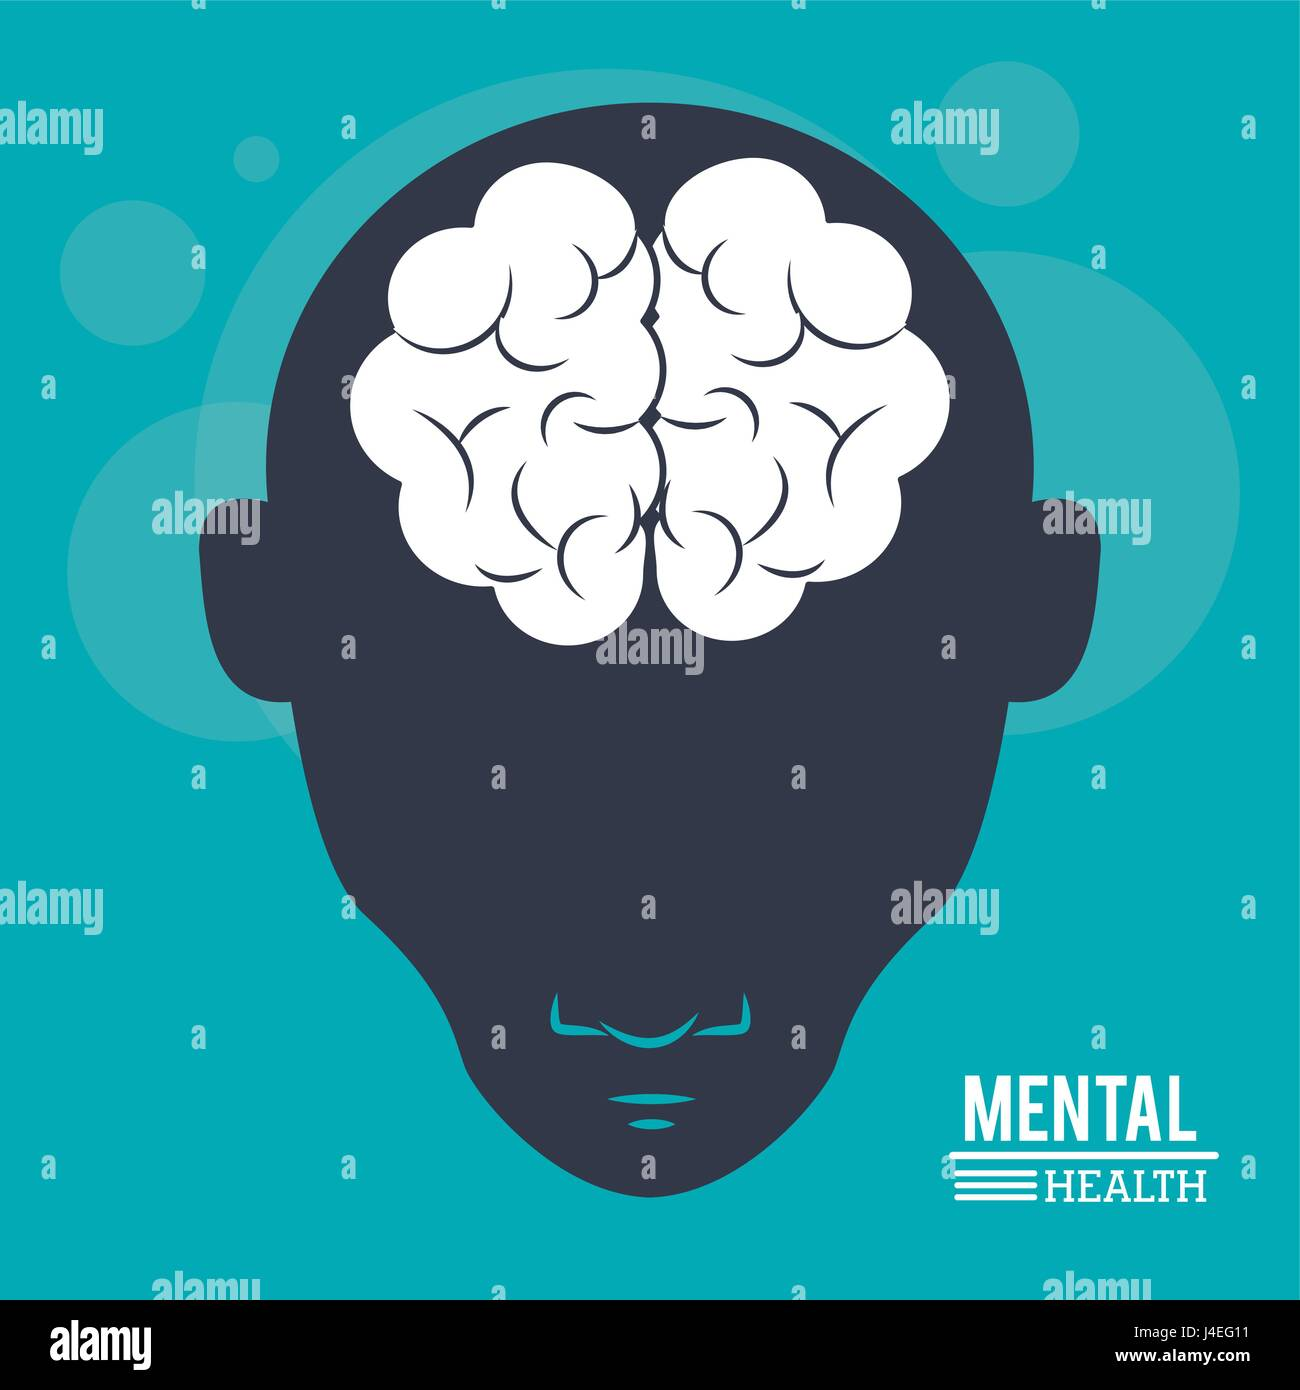 mental health, head human, silhouette face and brain in flat style - Stock Image